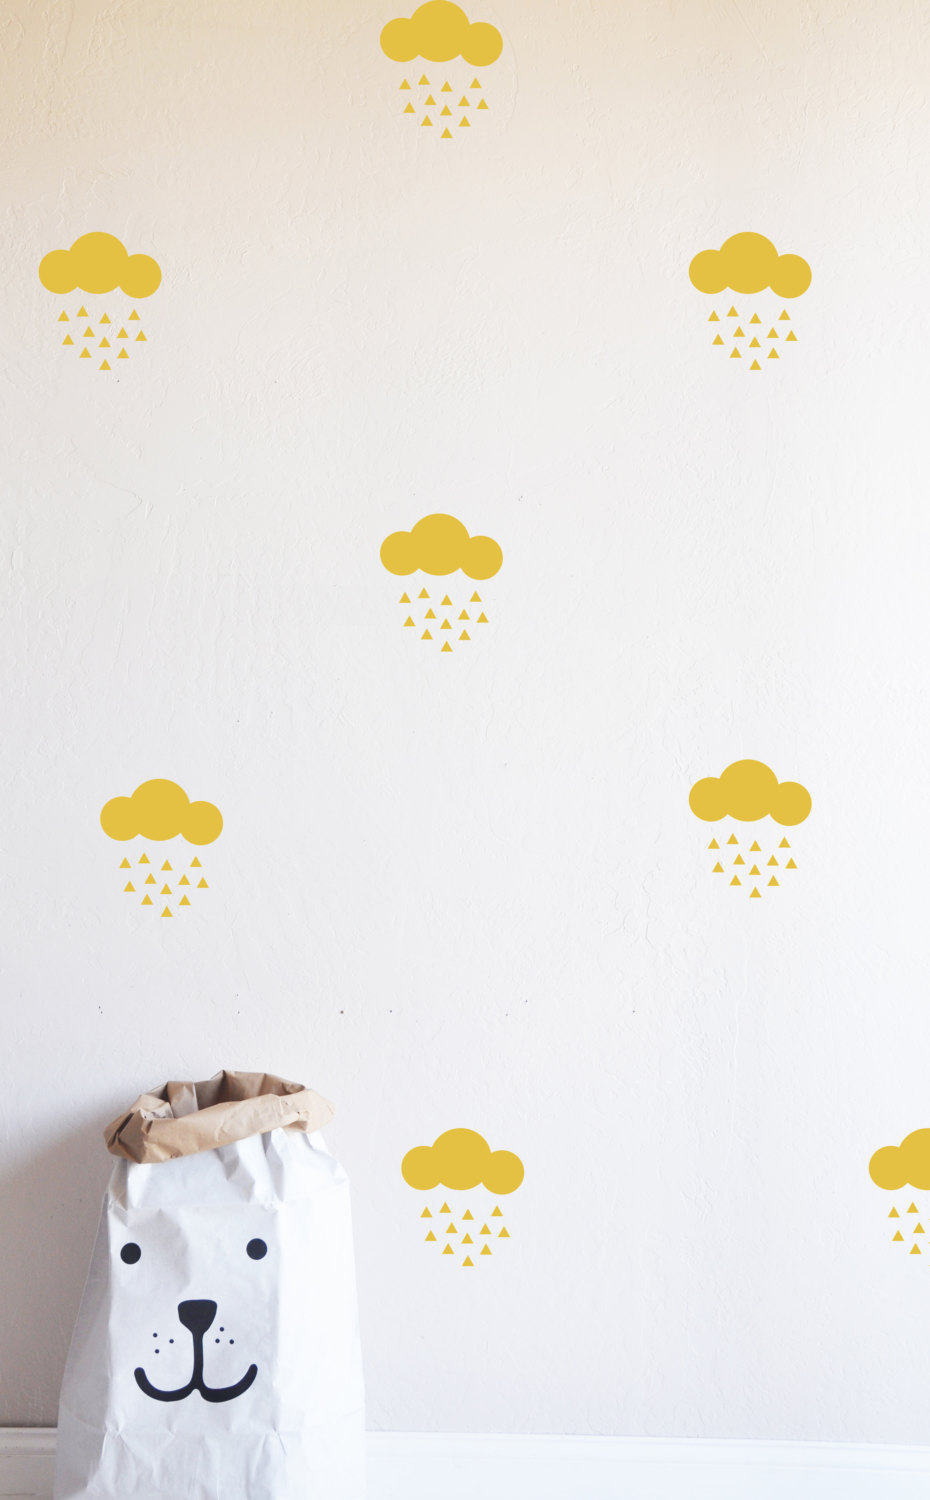 petits-nuages-stickers